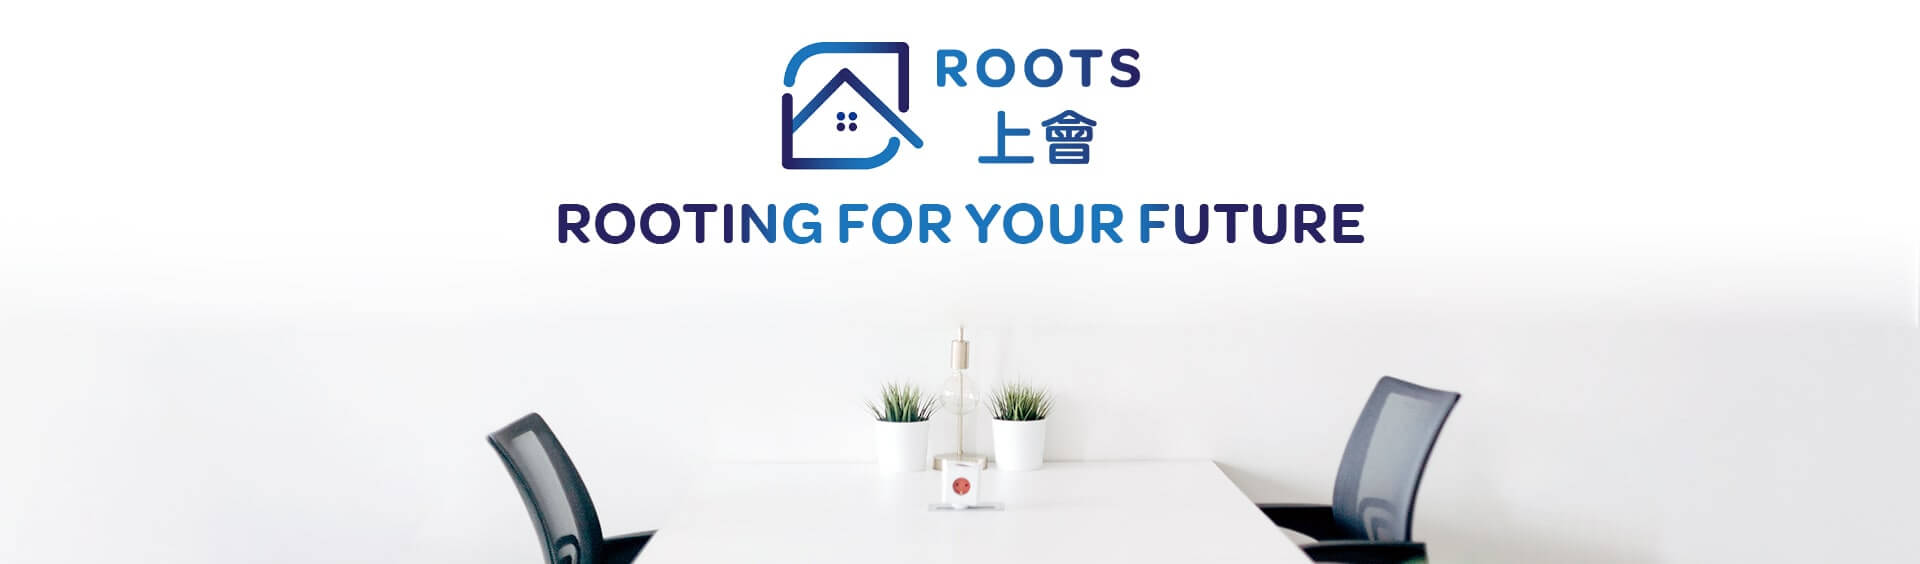 ROOTS上會 Rooting For Your Future